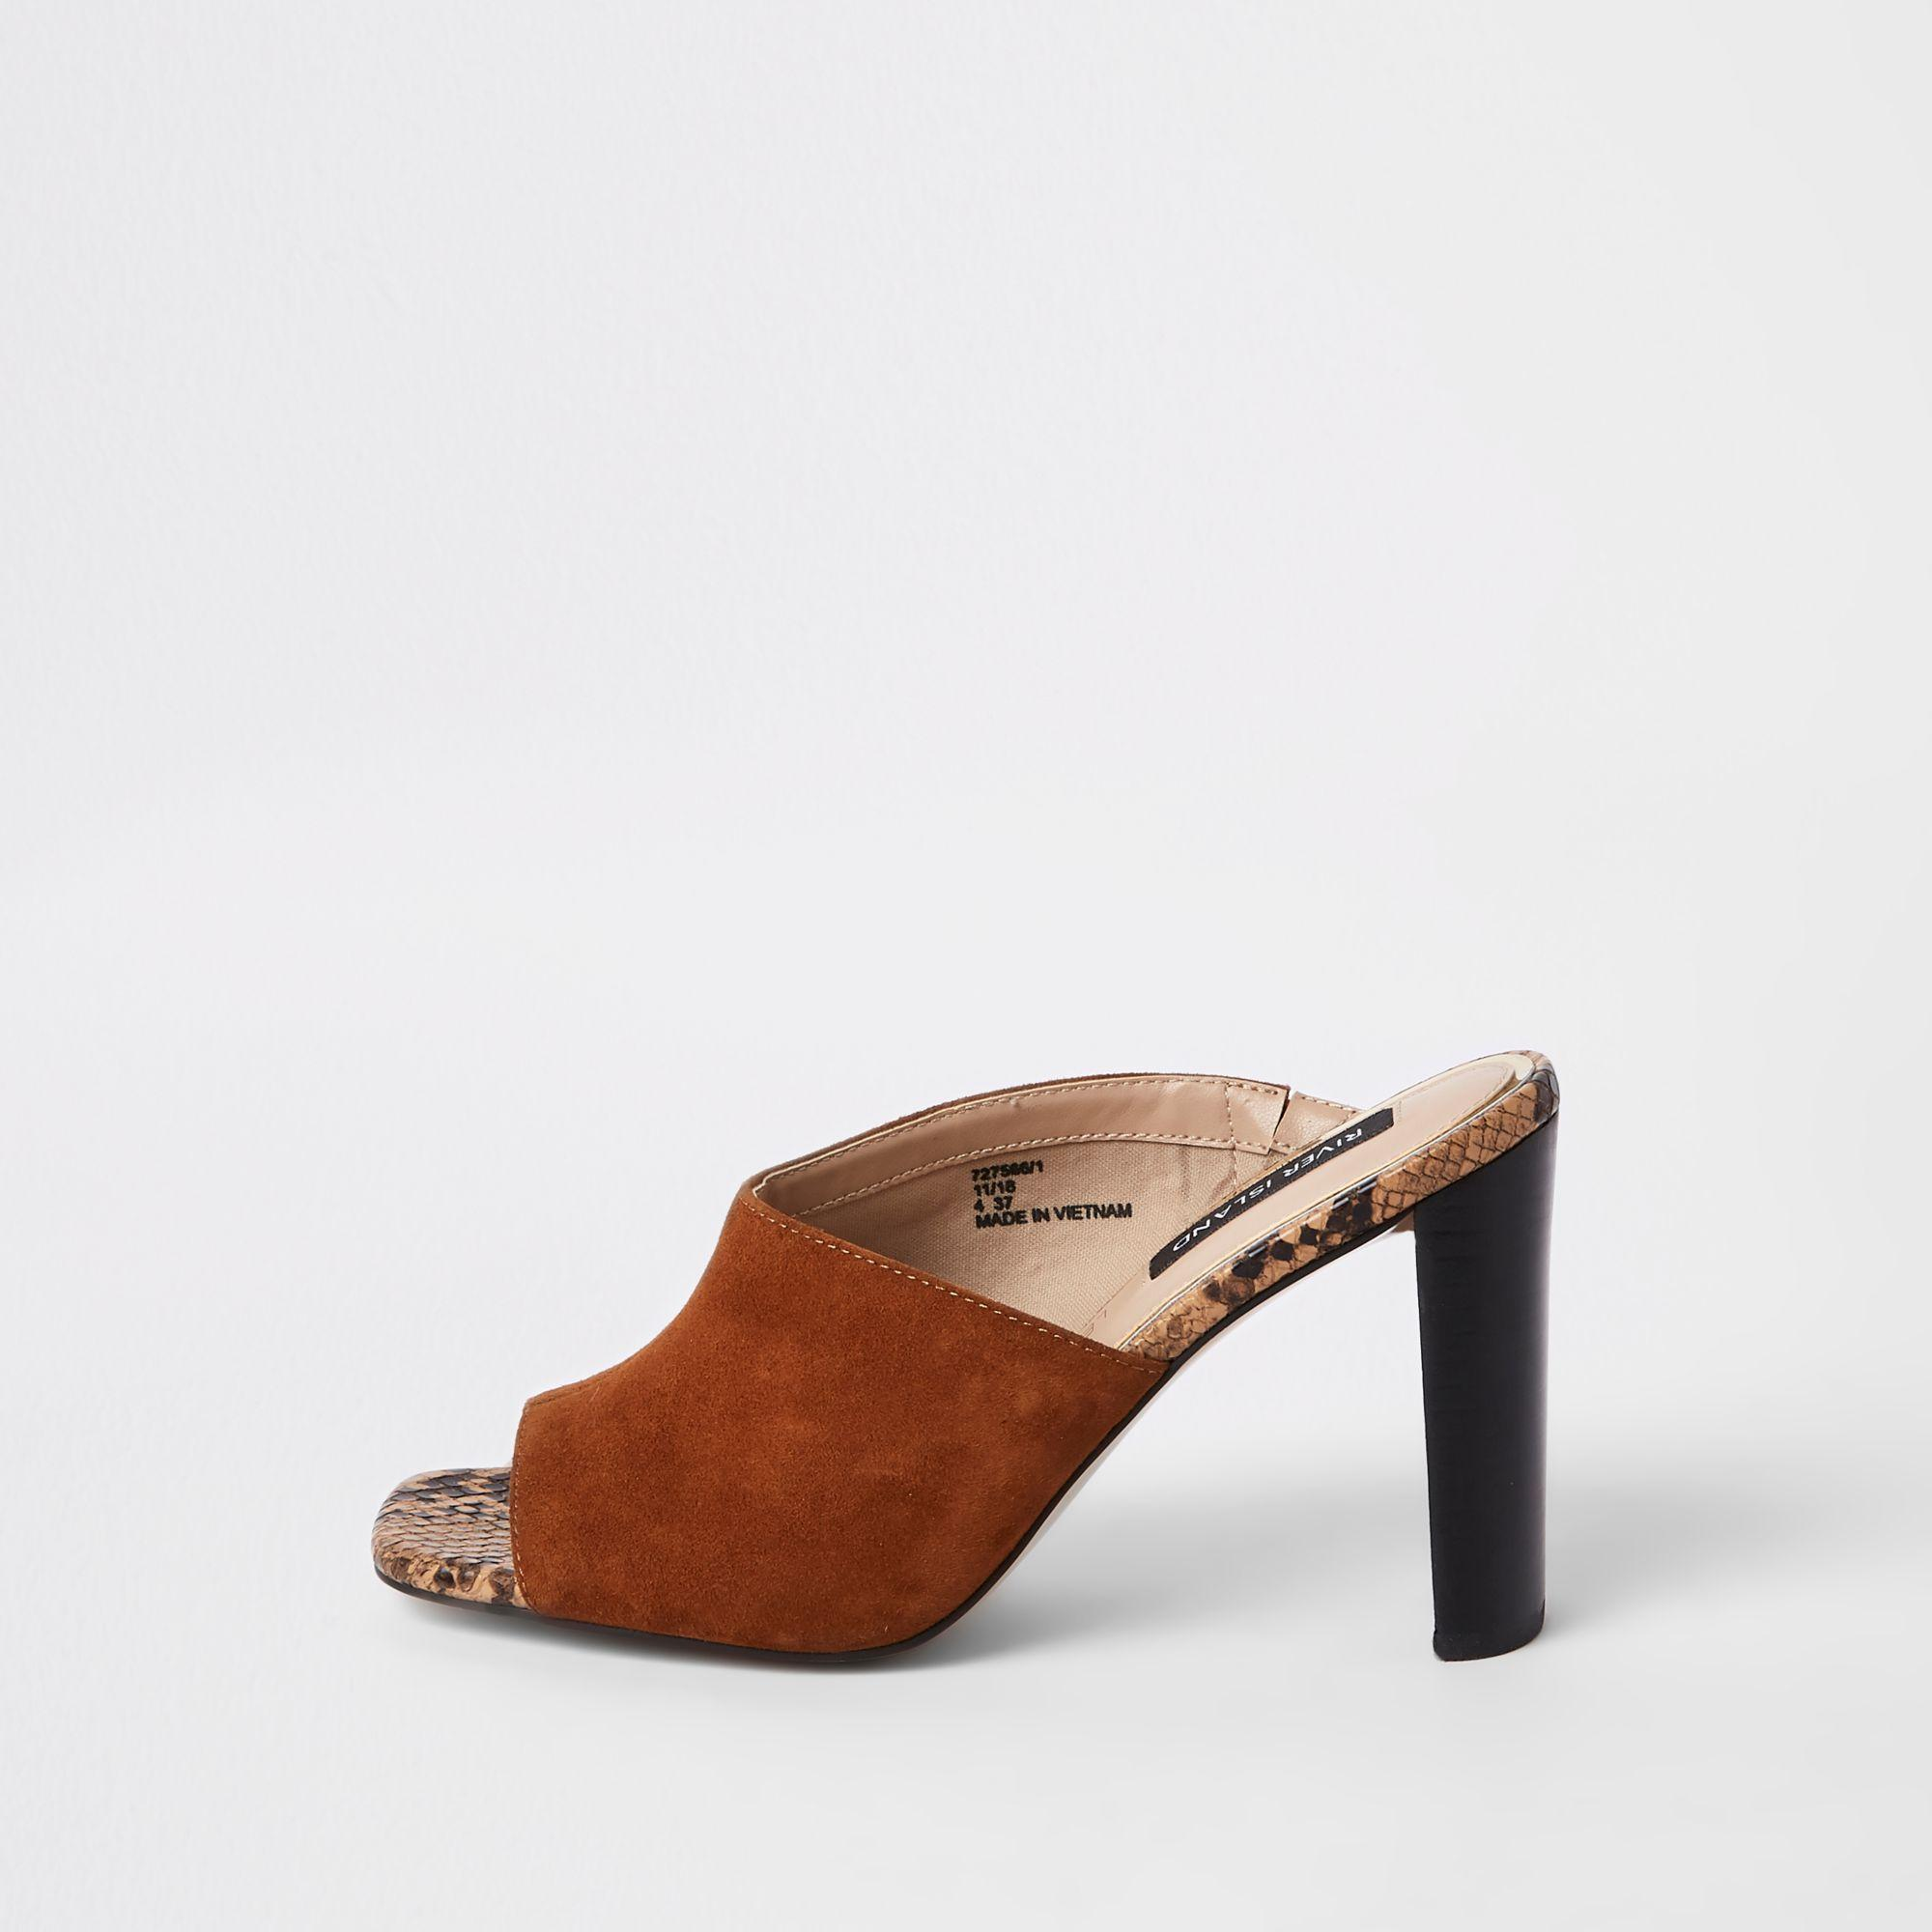 dc002fa68c26 River Island Light Brown Asymmetric Heeled Mules in Brown - Lyst